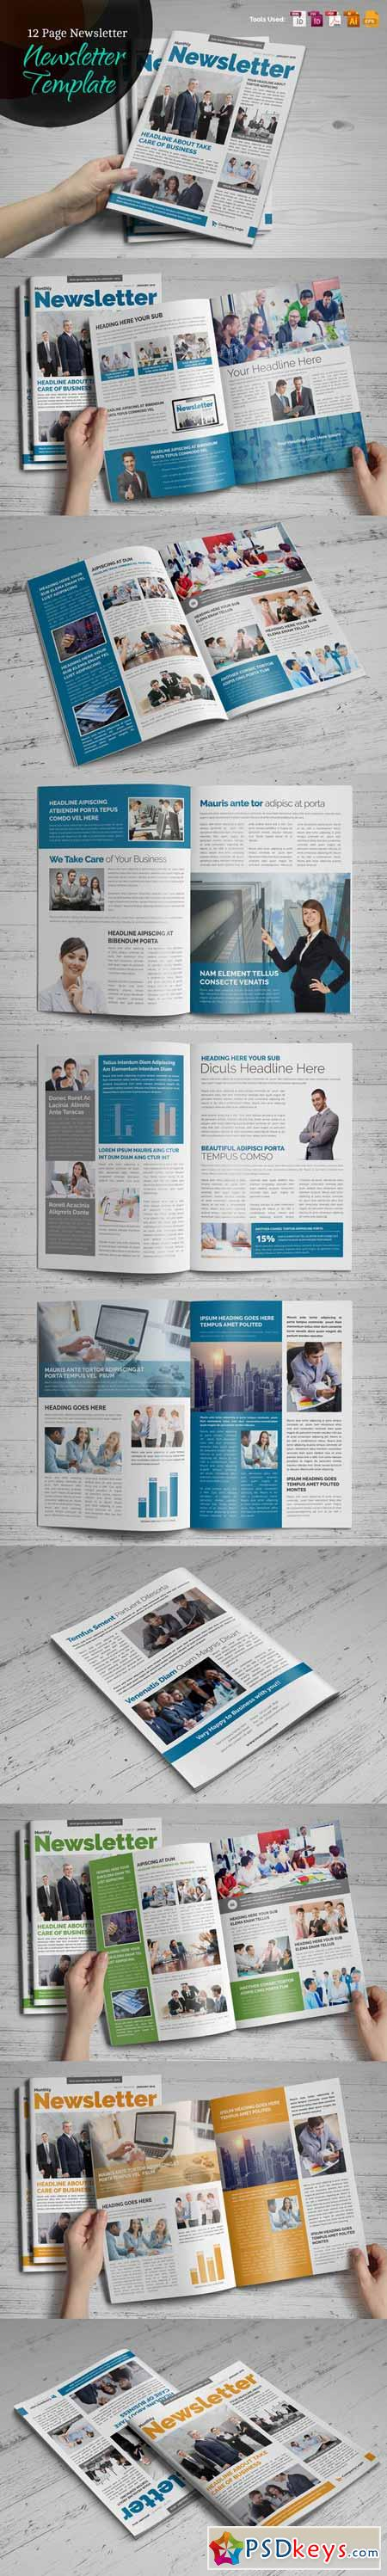 Newsletter Indesign Template v2 485958